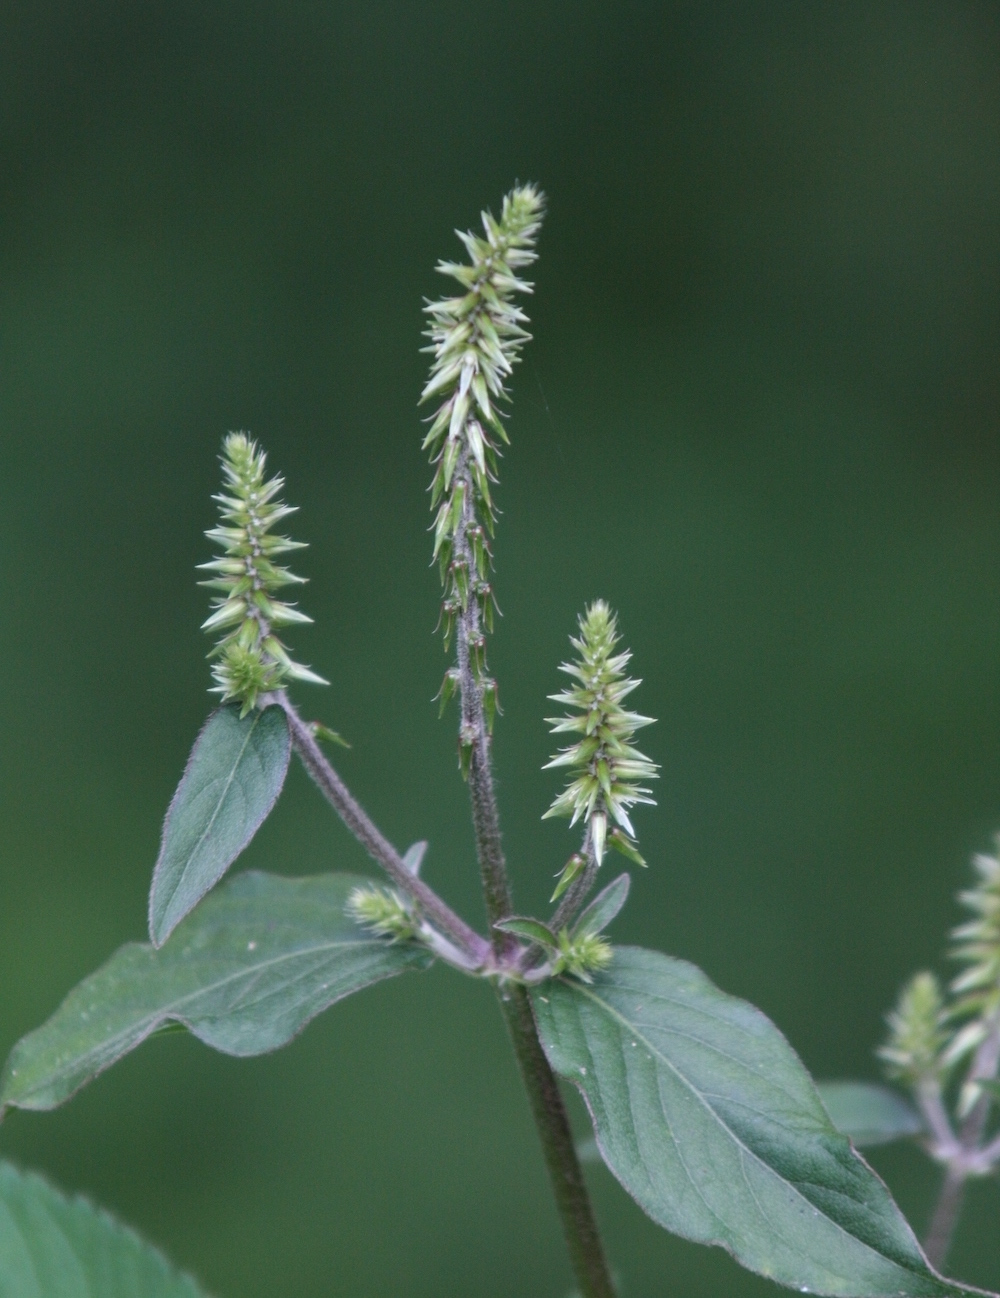 A plant with lanceolate leaves has spiky greenish-white, brush-like flowers.